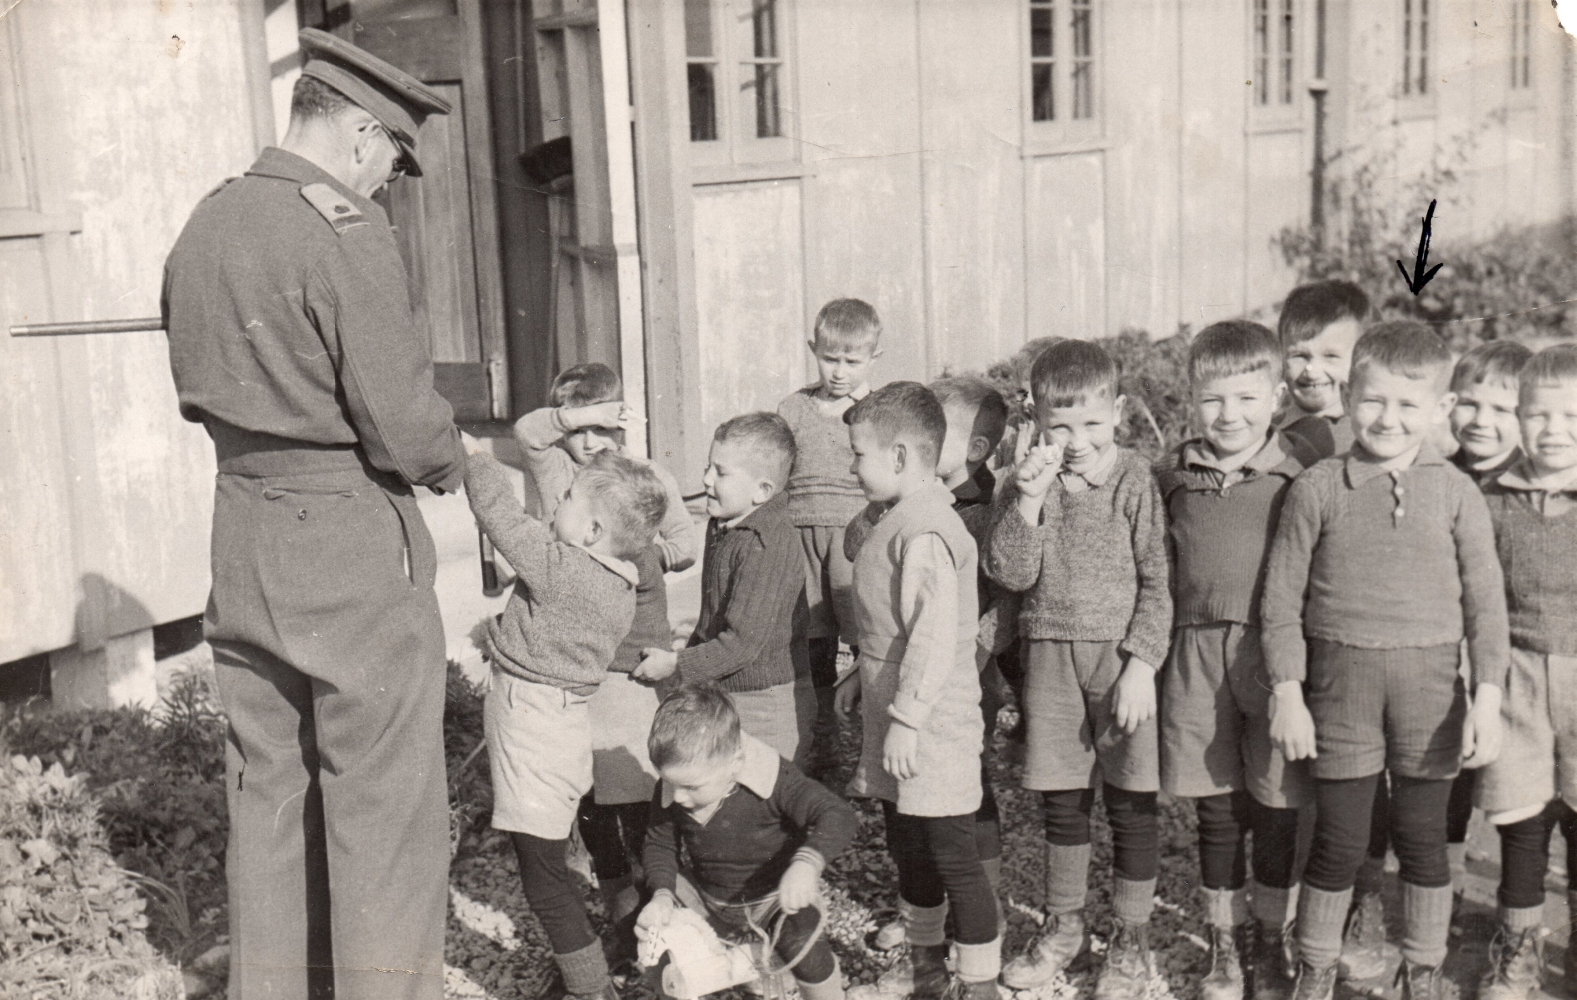 A soldier with  his back to the camera entertaining a group of boys.